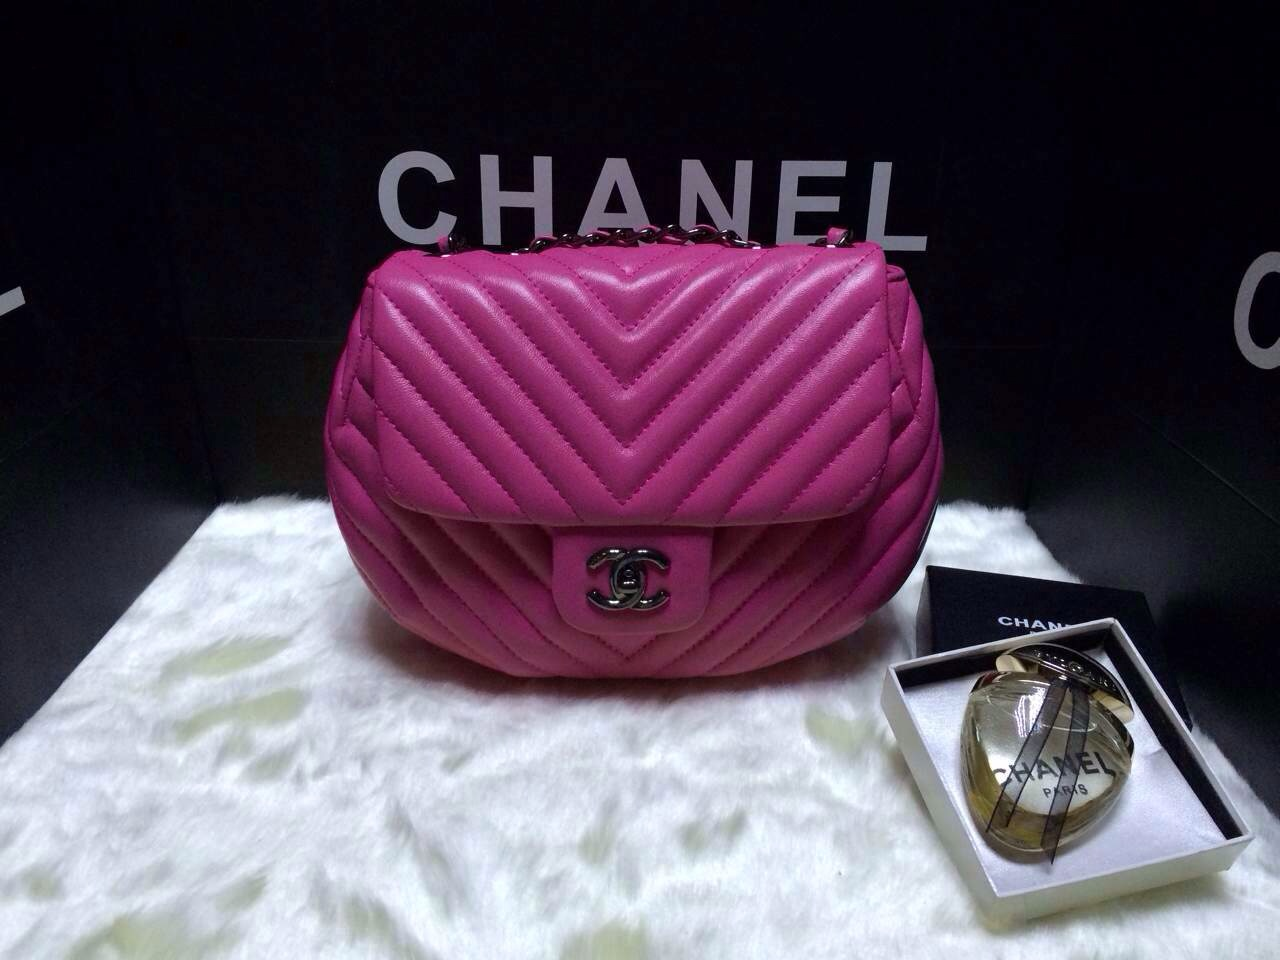 Chanel Chevron Flap Bag in Round Shape 2014 Cruise Dubai 4 - Replica Chanel Cruise Dubai 2015 Collection - Heart-shaped Flap Bag Available